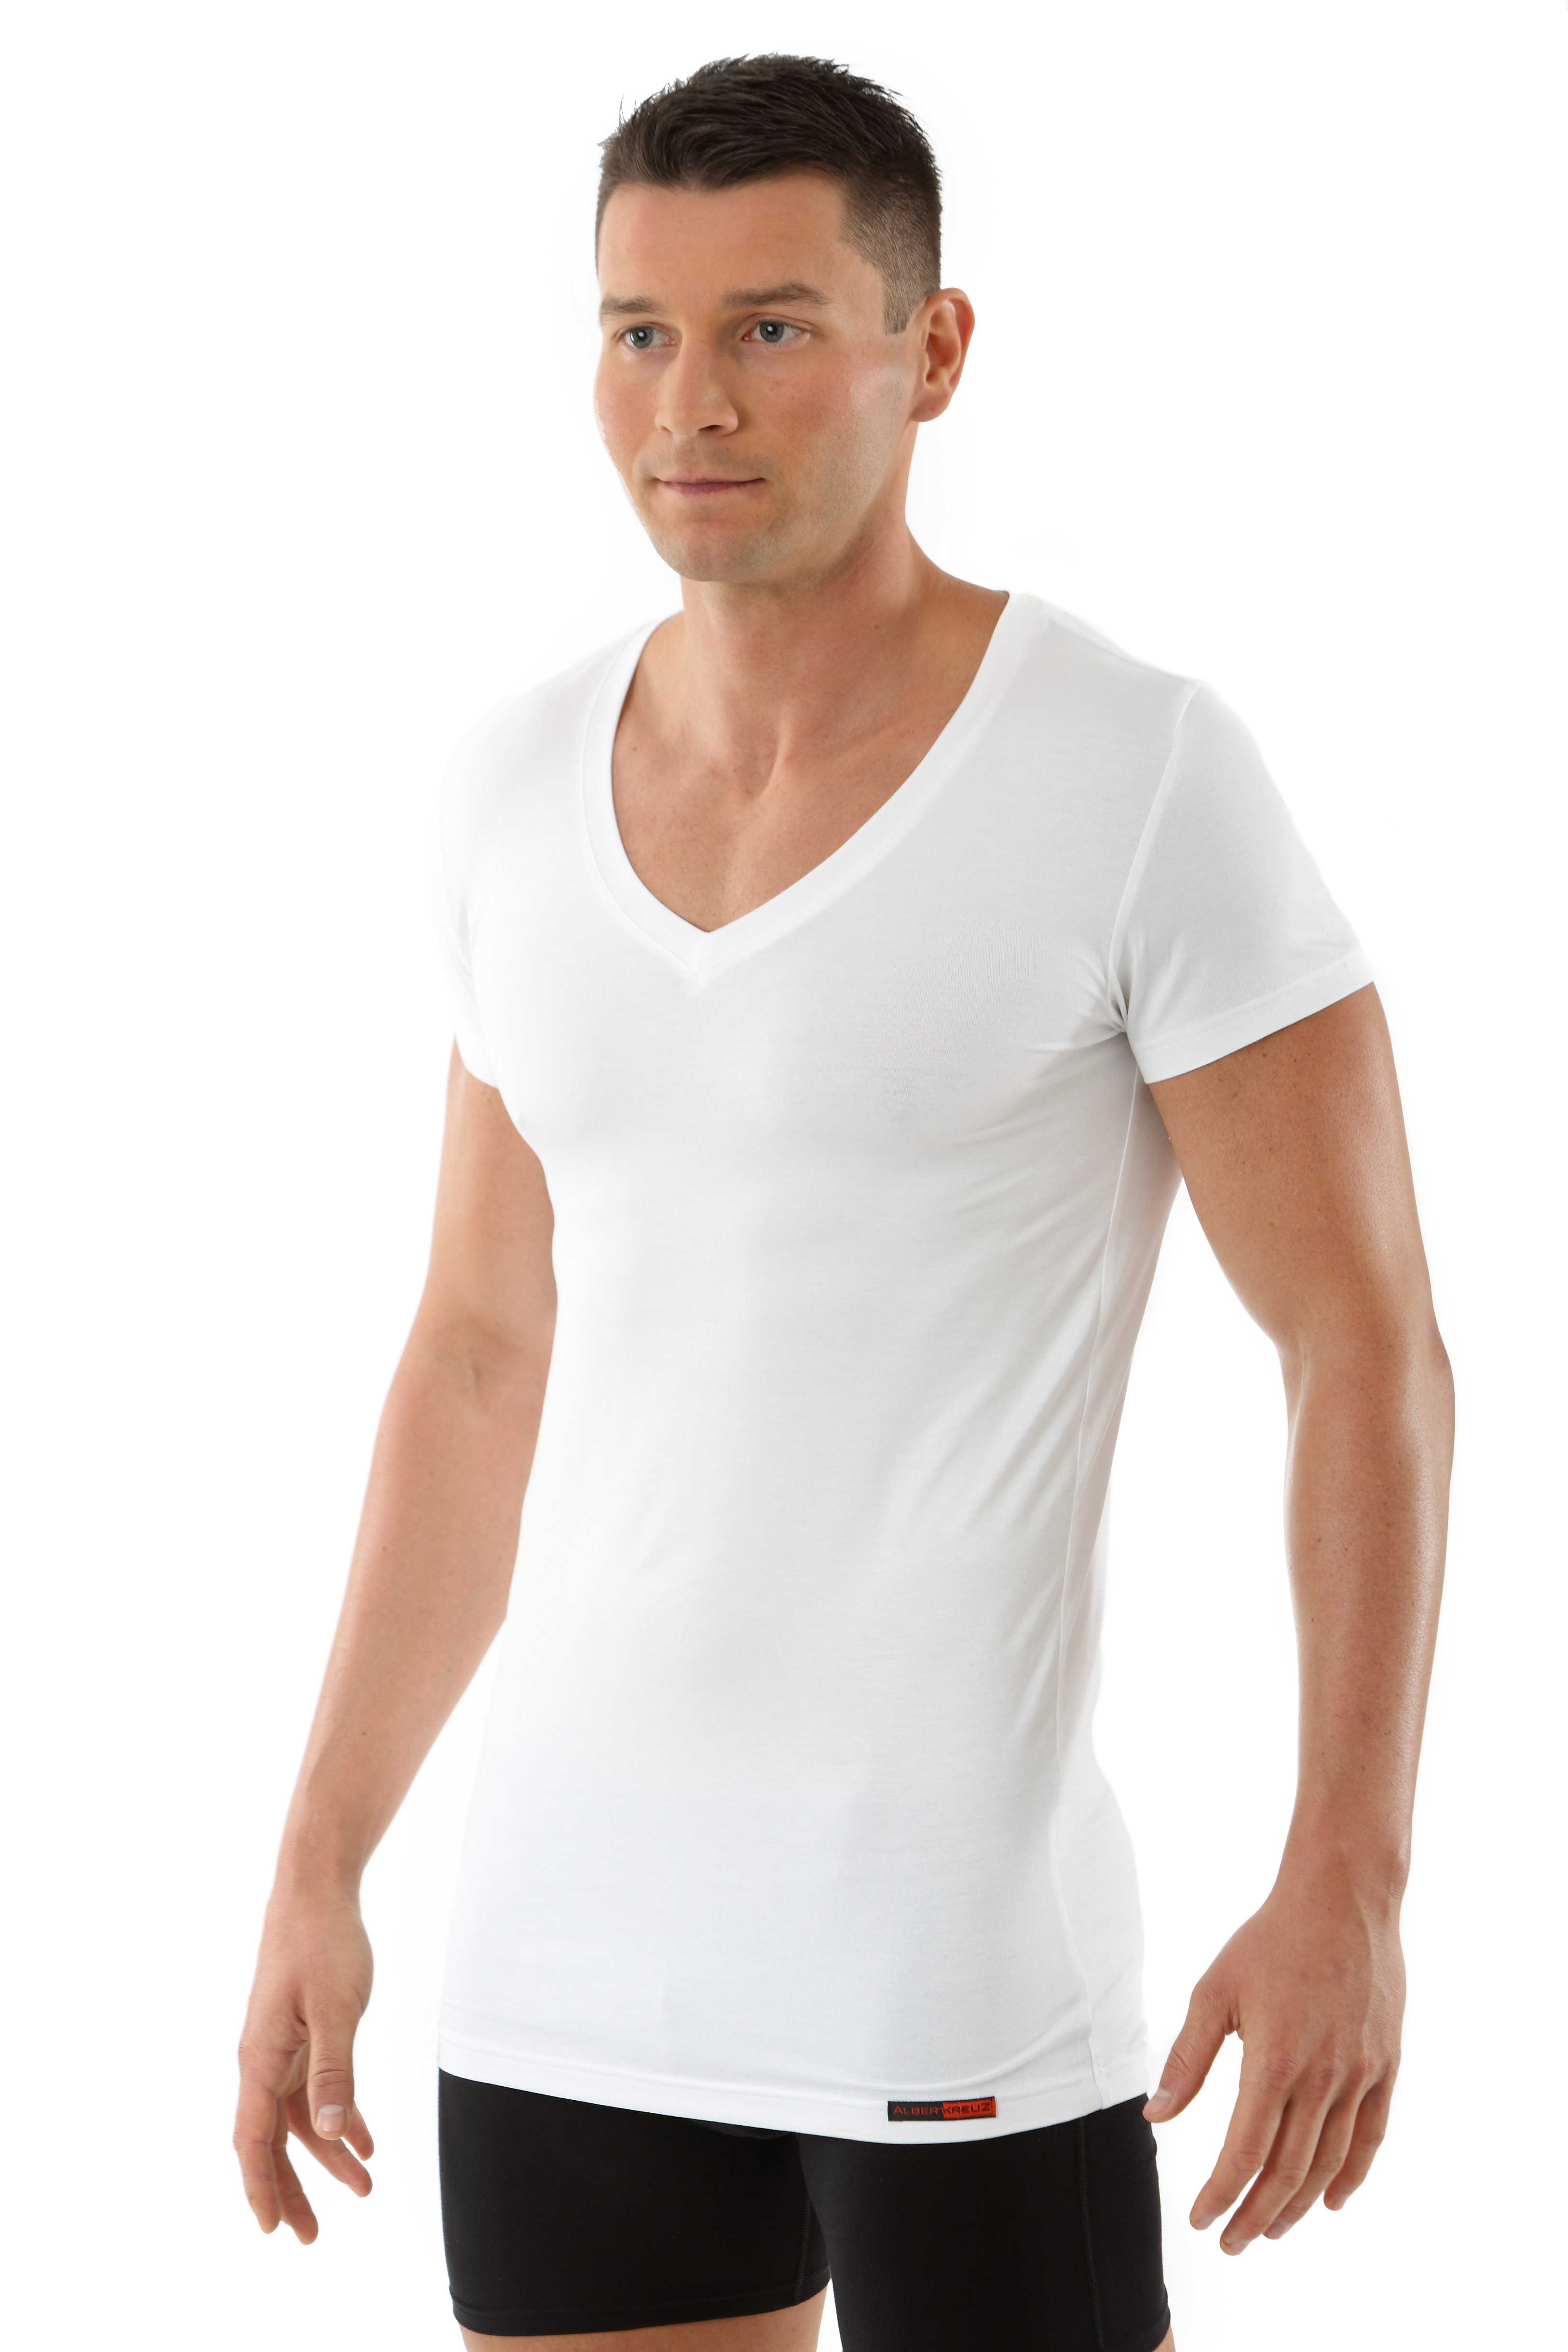 Shop for white undershirt online at Target. Free shipping on purchases over $35 and save 5% every day with your Target REDcard.